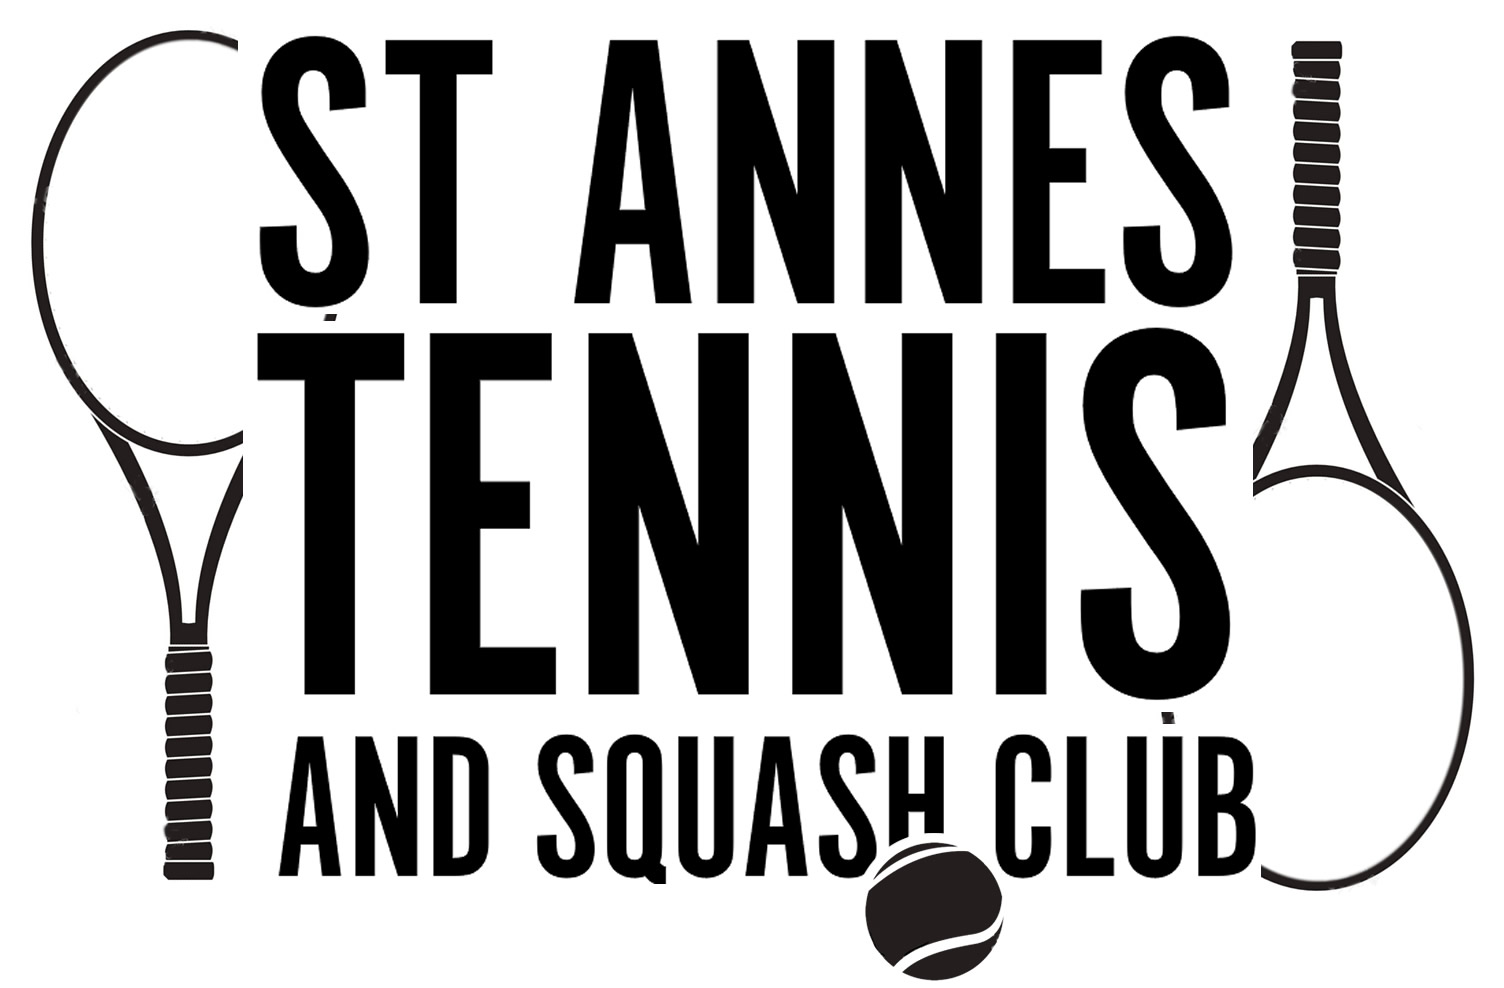 My Tennis Club